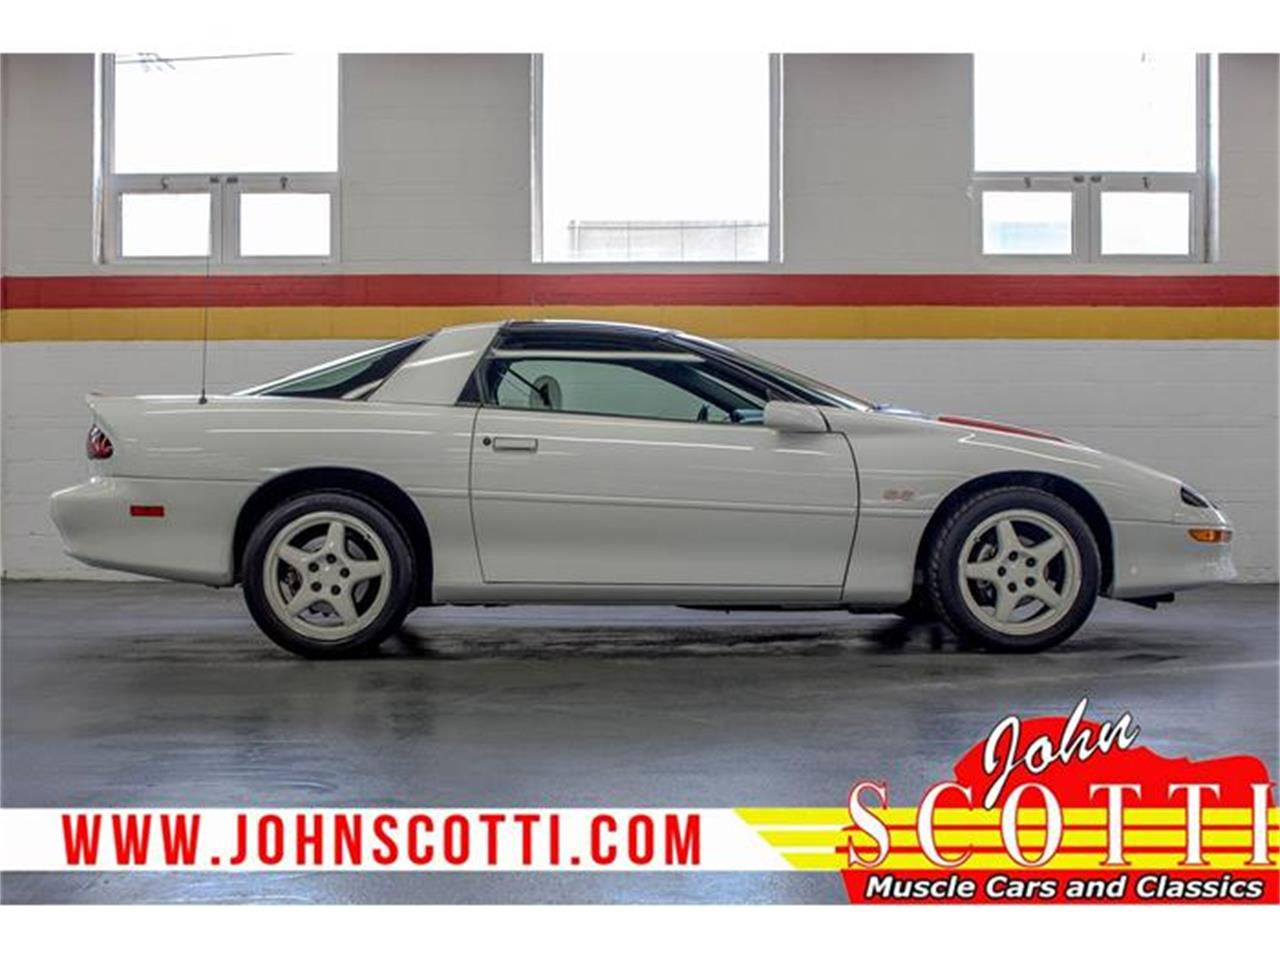 Large Picture of '97 Chevrolet Camaro SS Z28 - $22,990.00 Offered by John Scotti Classic Cars - G9NR